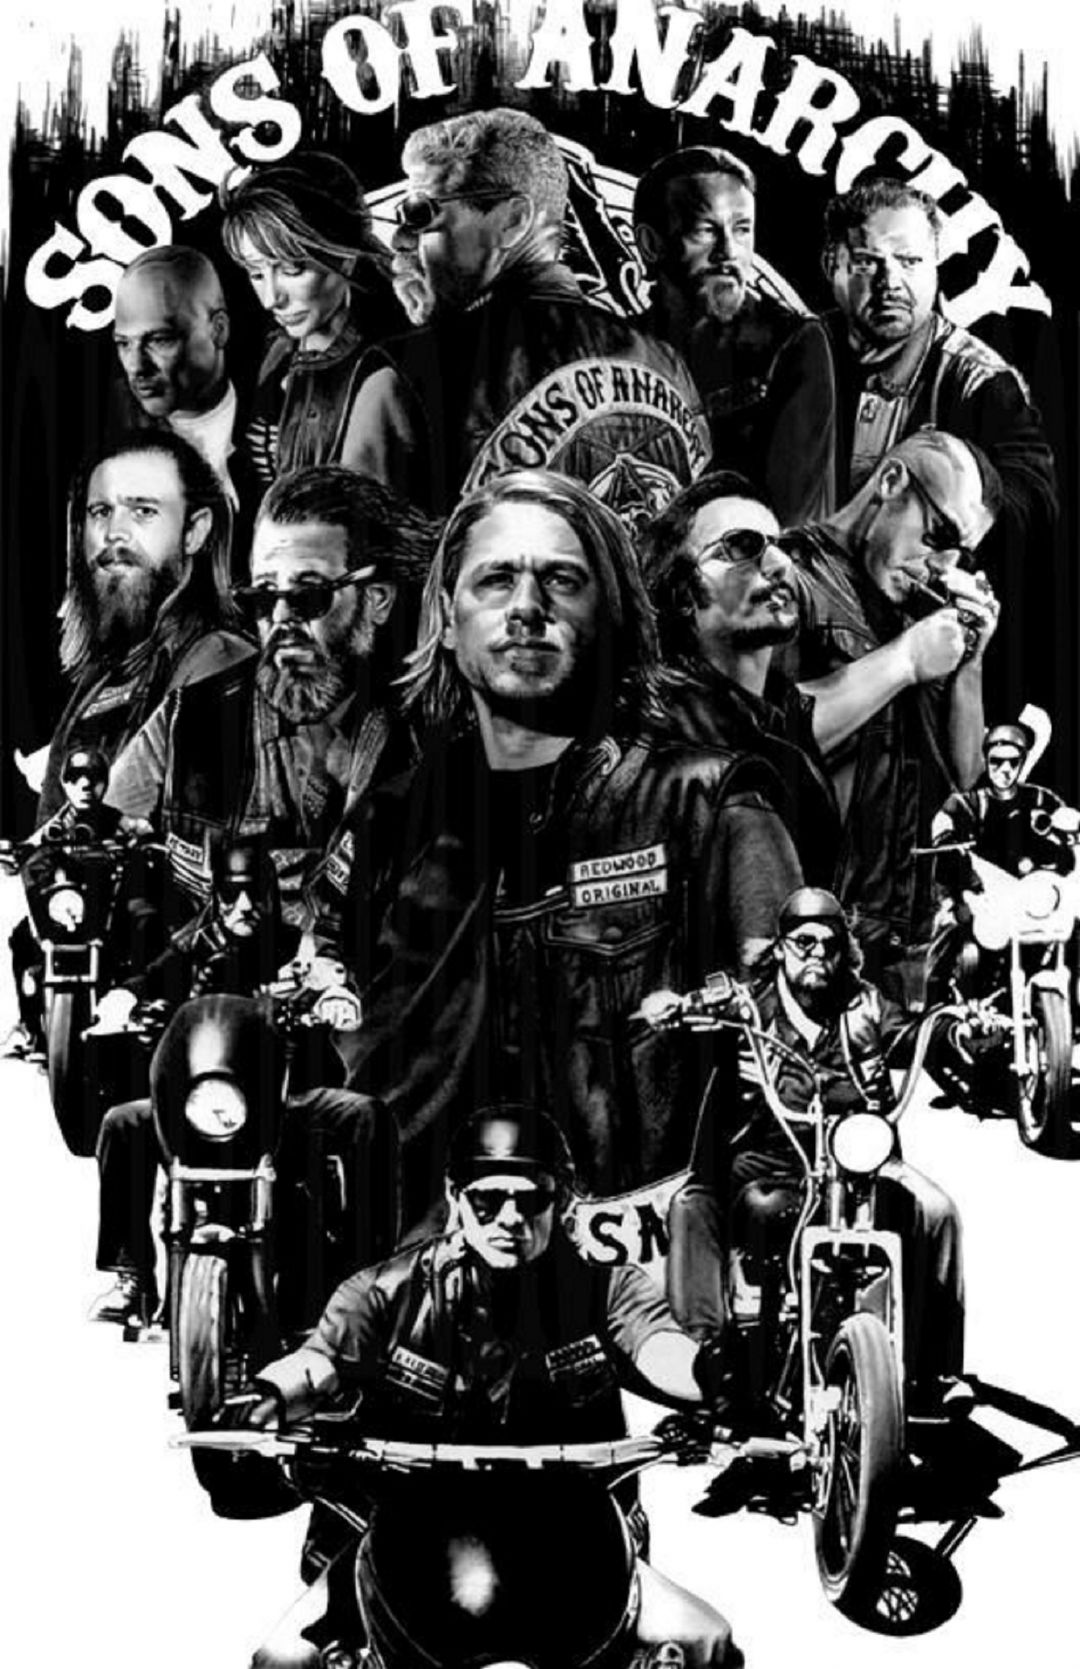 Sons Of Anarchy Wallpaper Iphone - Sons Of Anarchy Iphone , HD Wallpaper & Backgrounds